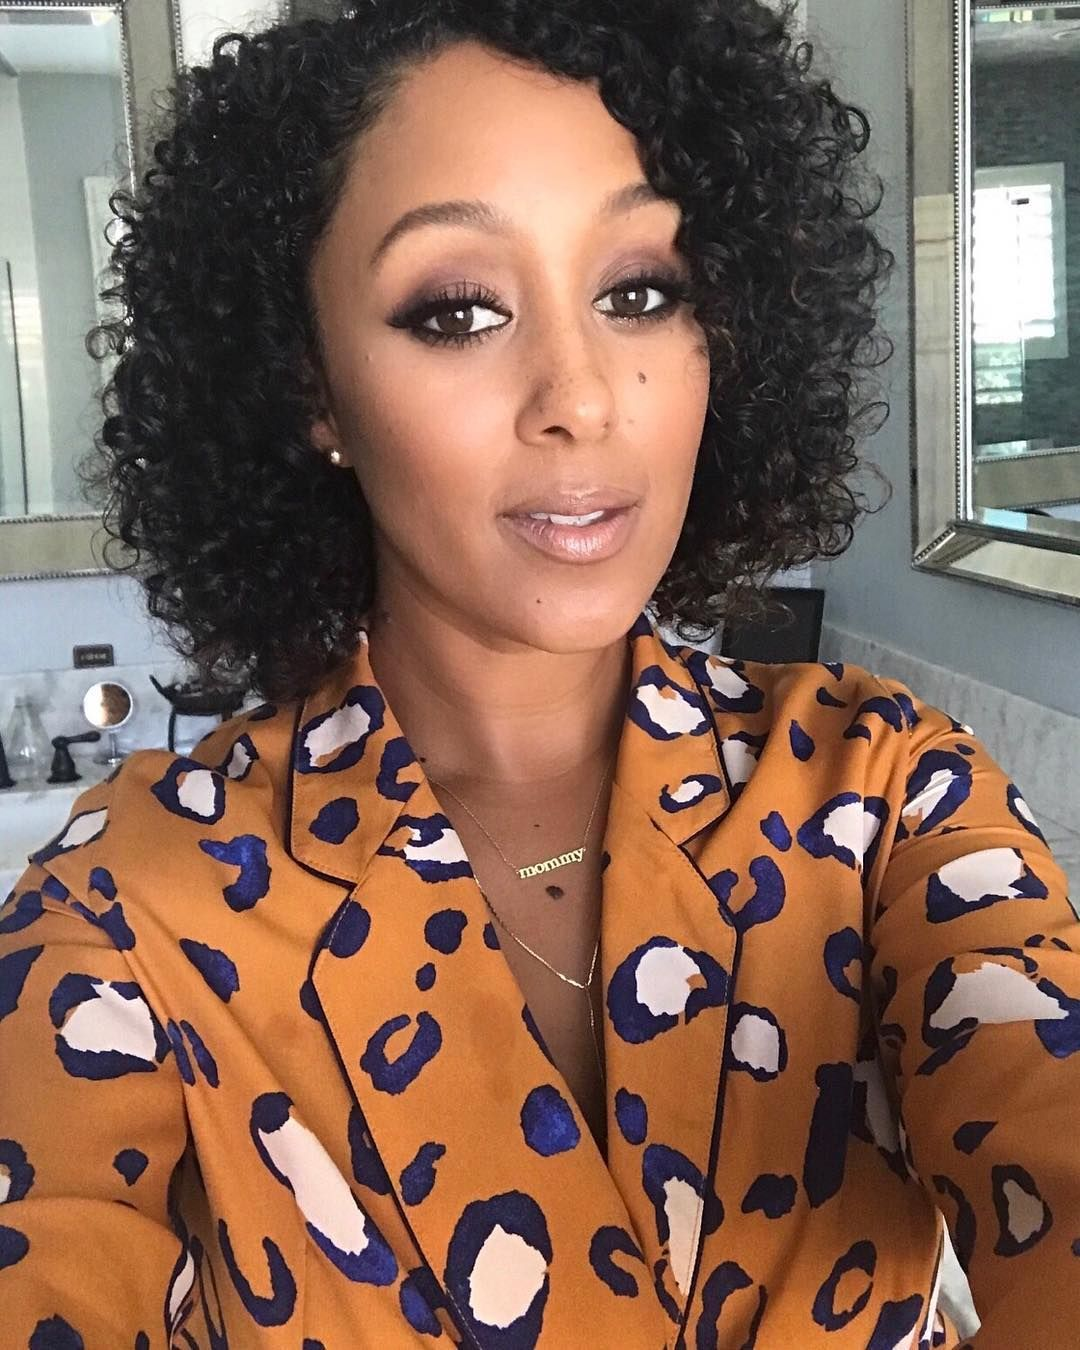 Selfie Tamera Mowry nude (33 photos), Topless, Sideboobs, Instagram, braless 2006